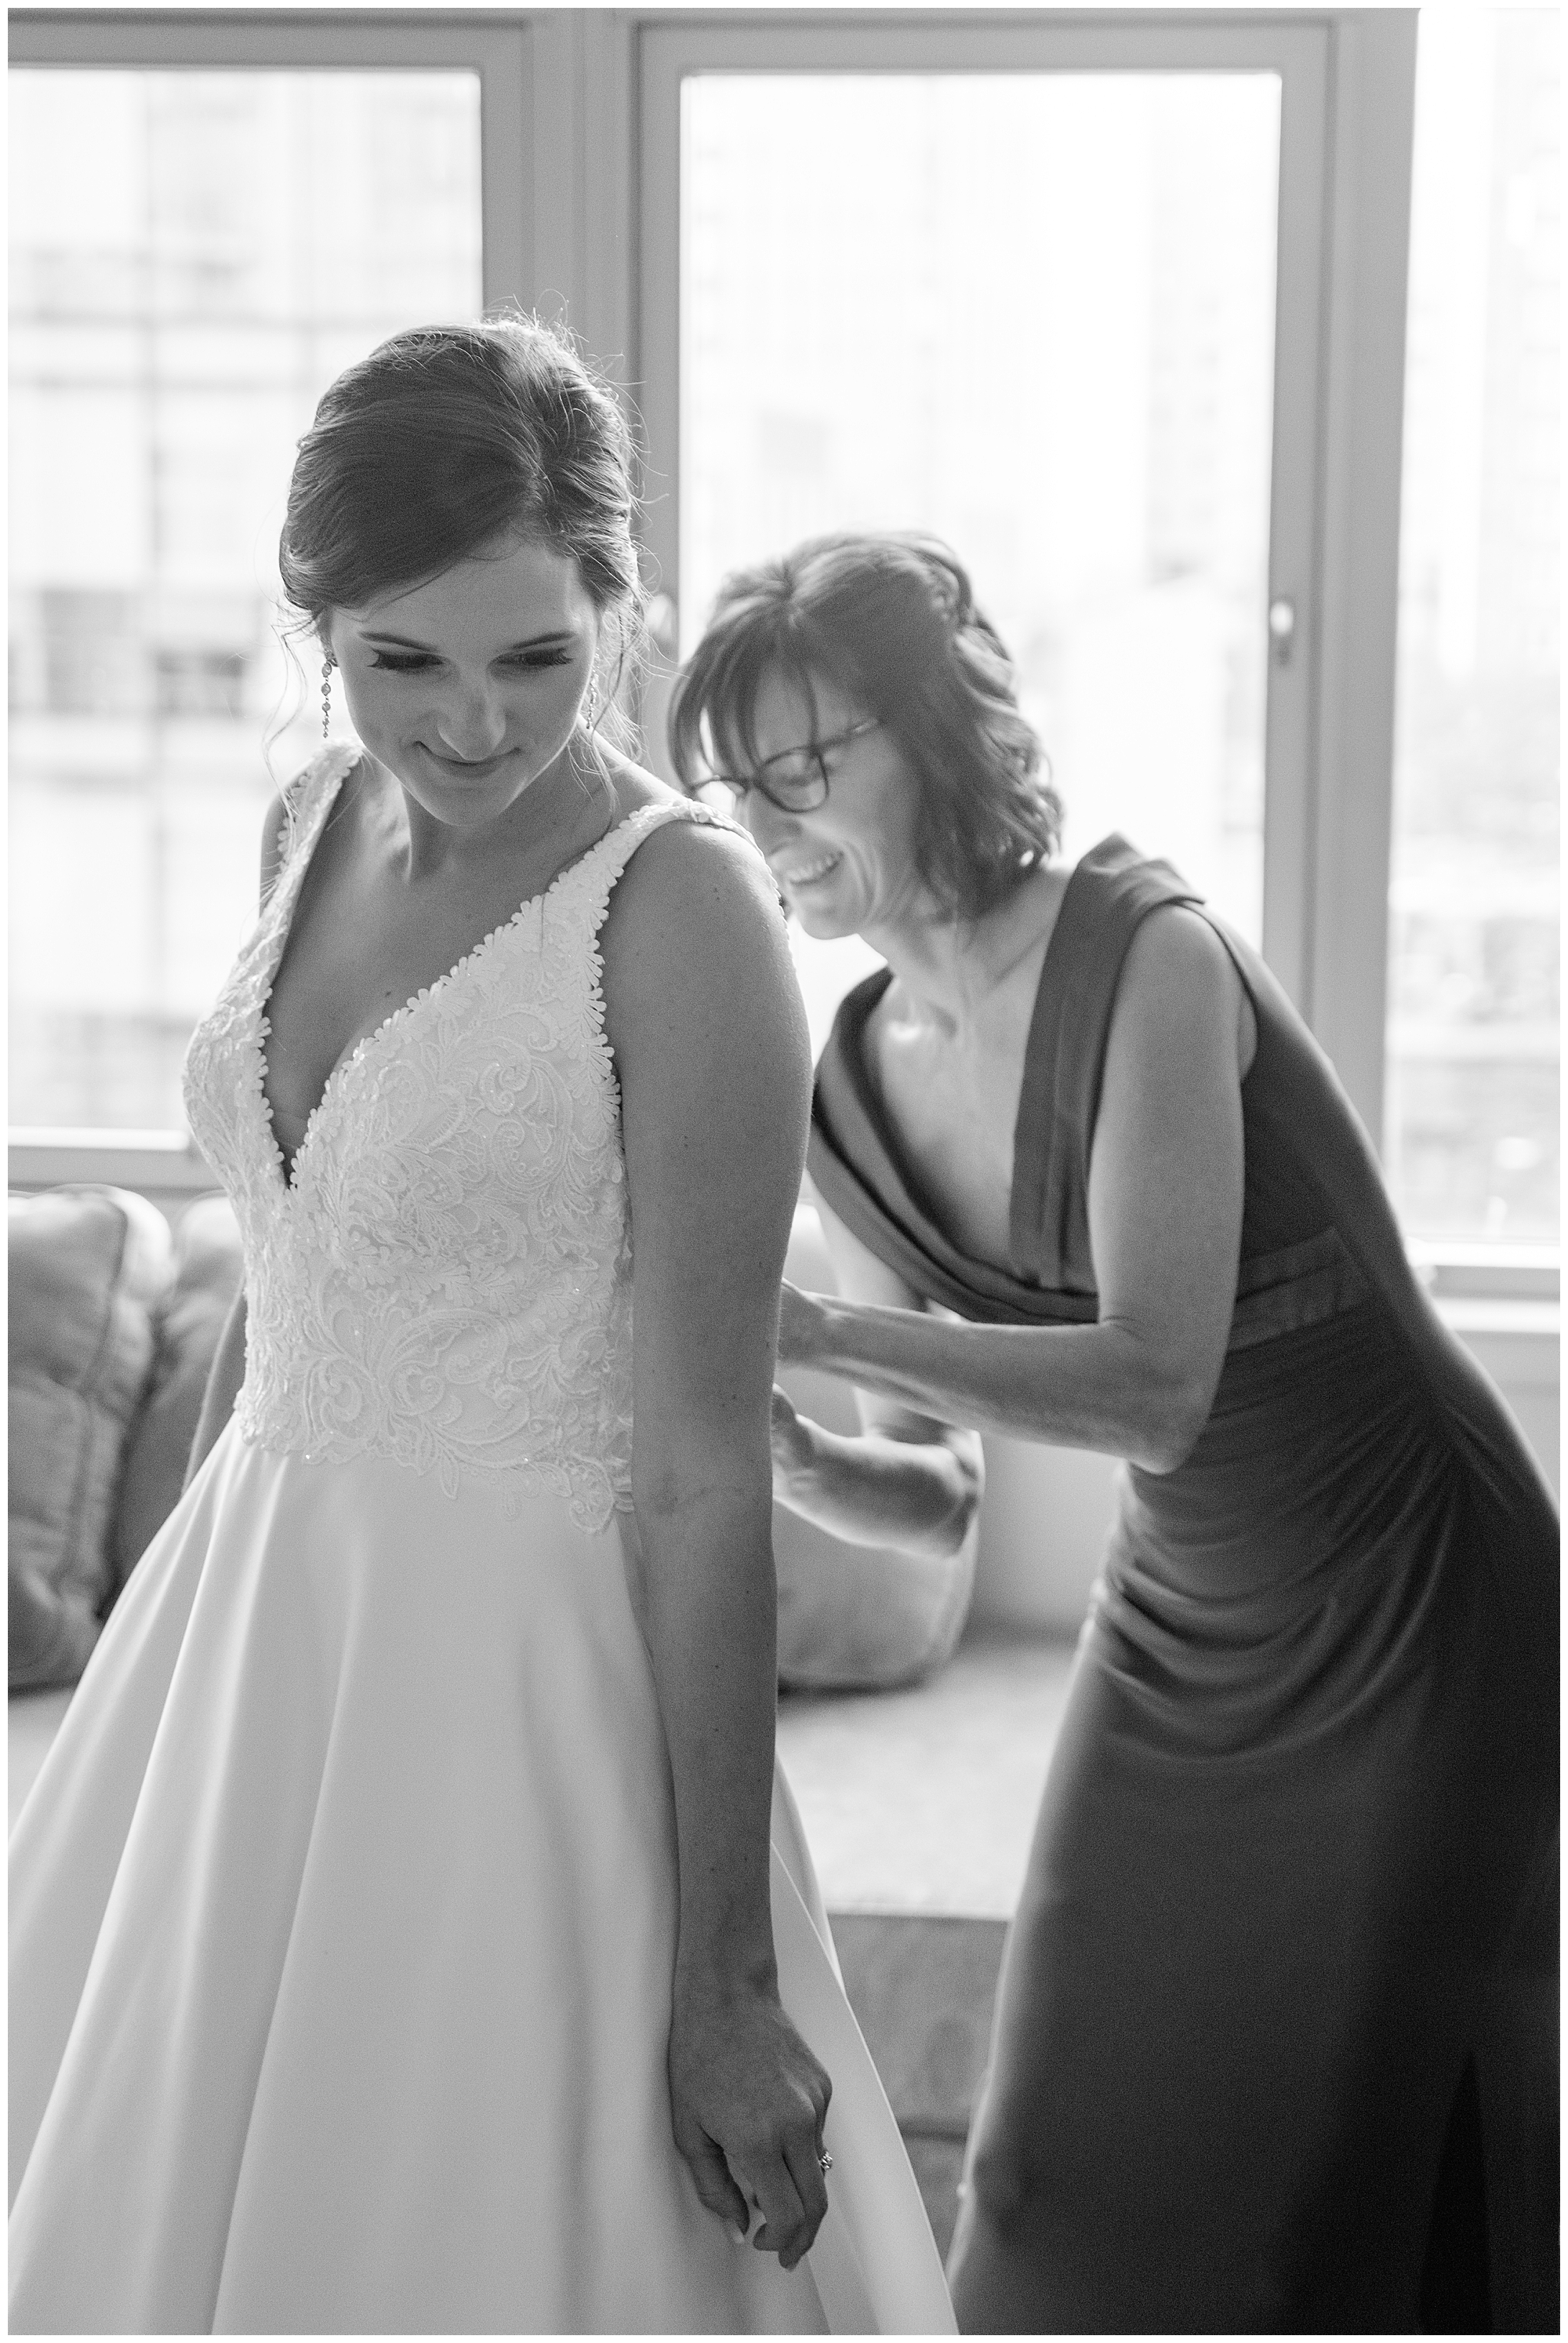 A black and white photo of a mother zipping up her daughter's dress before her Washington DC wedding.